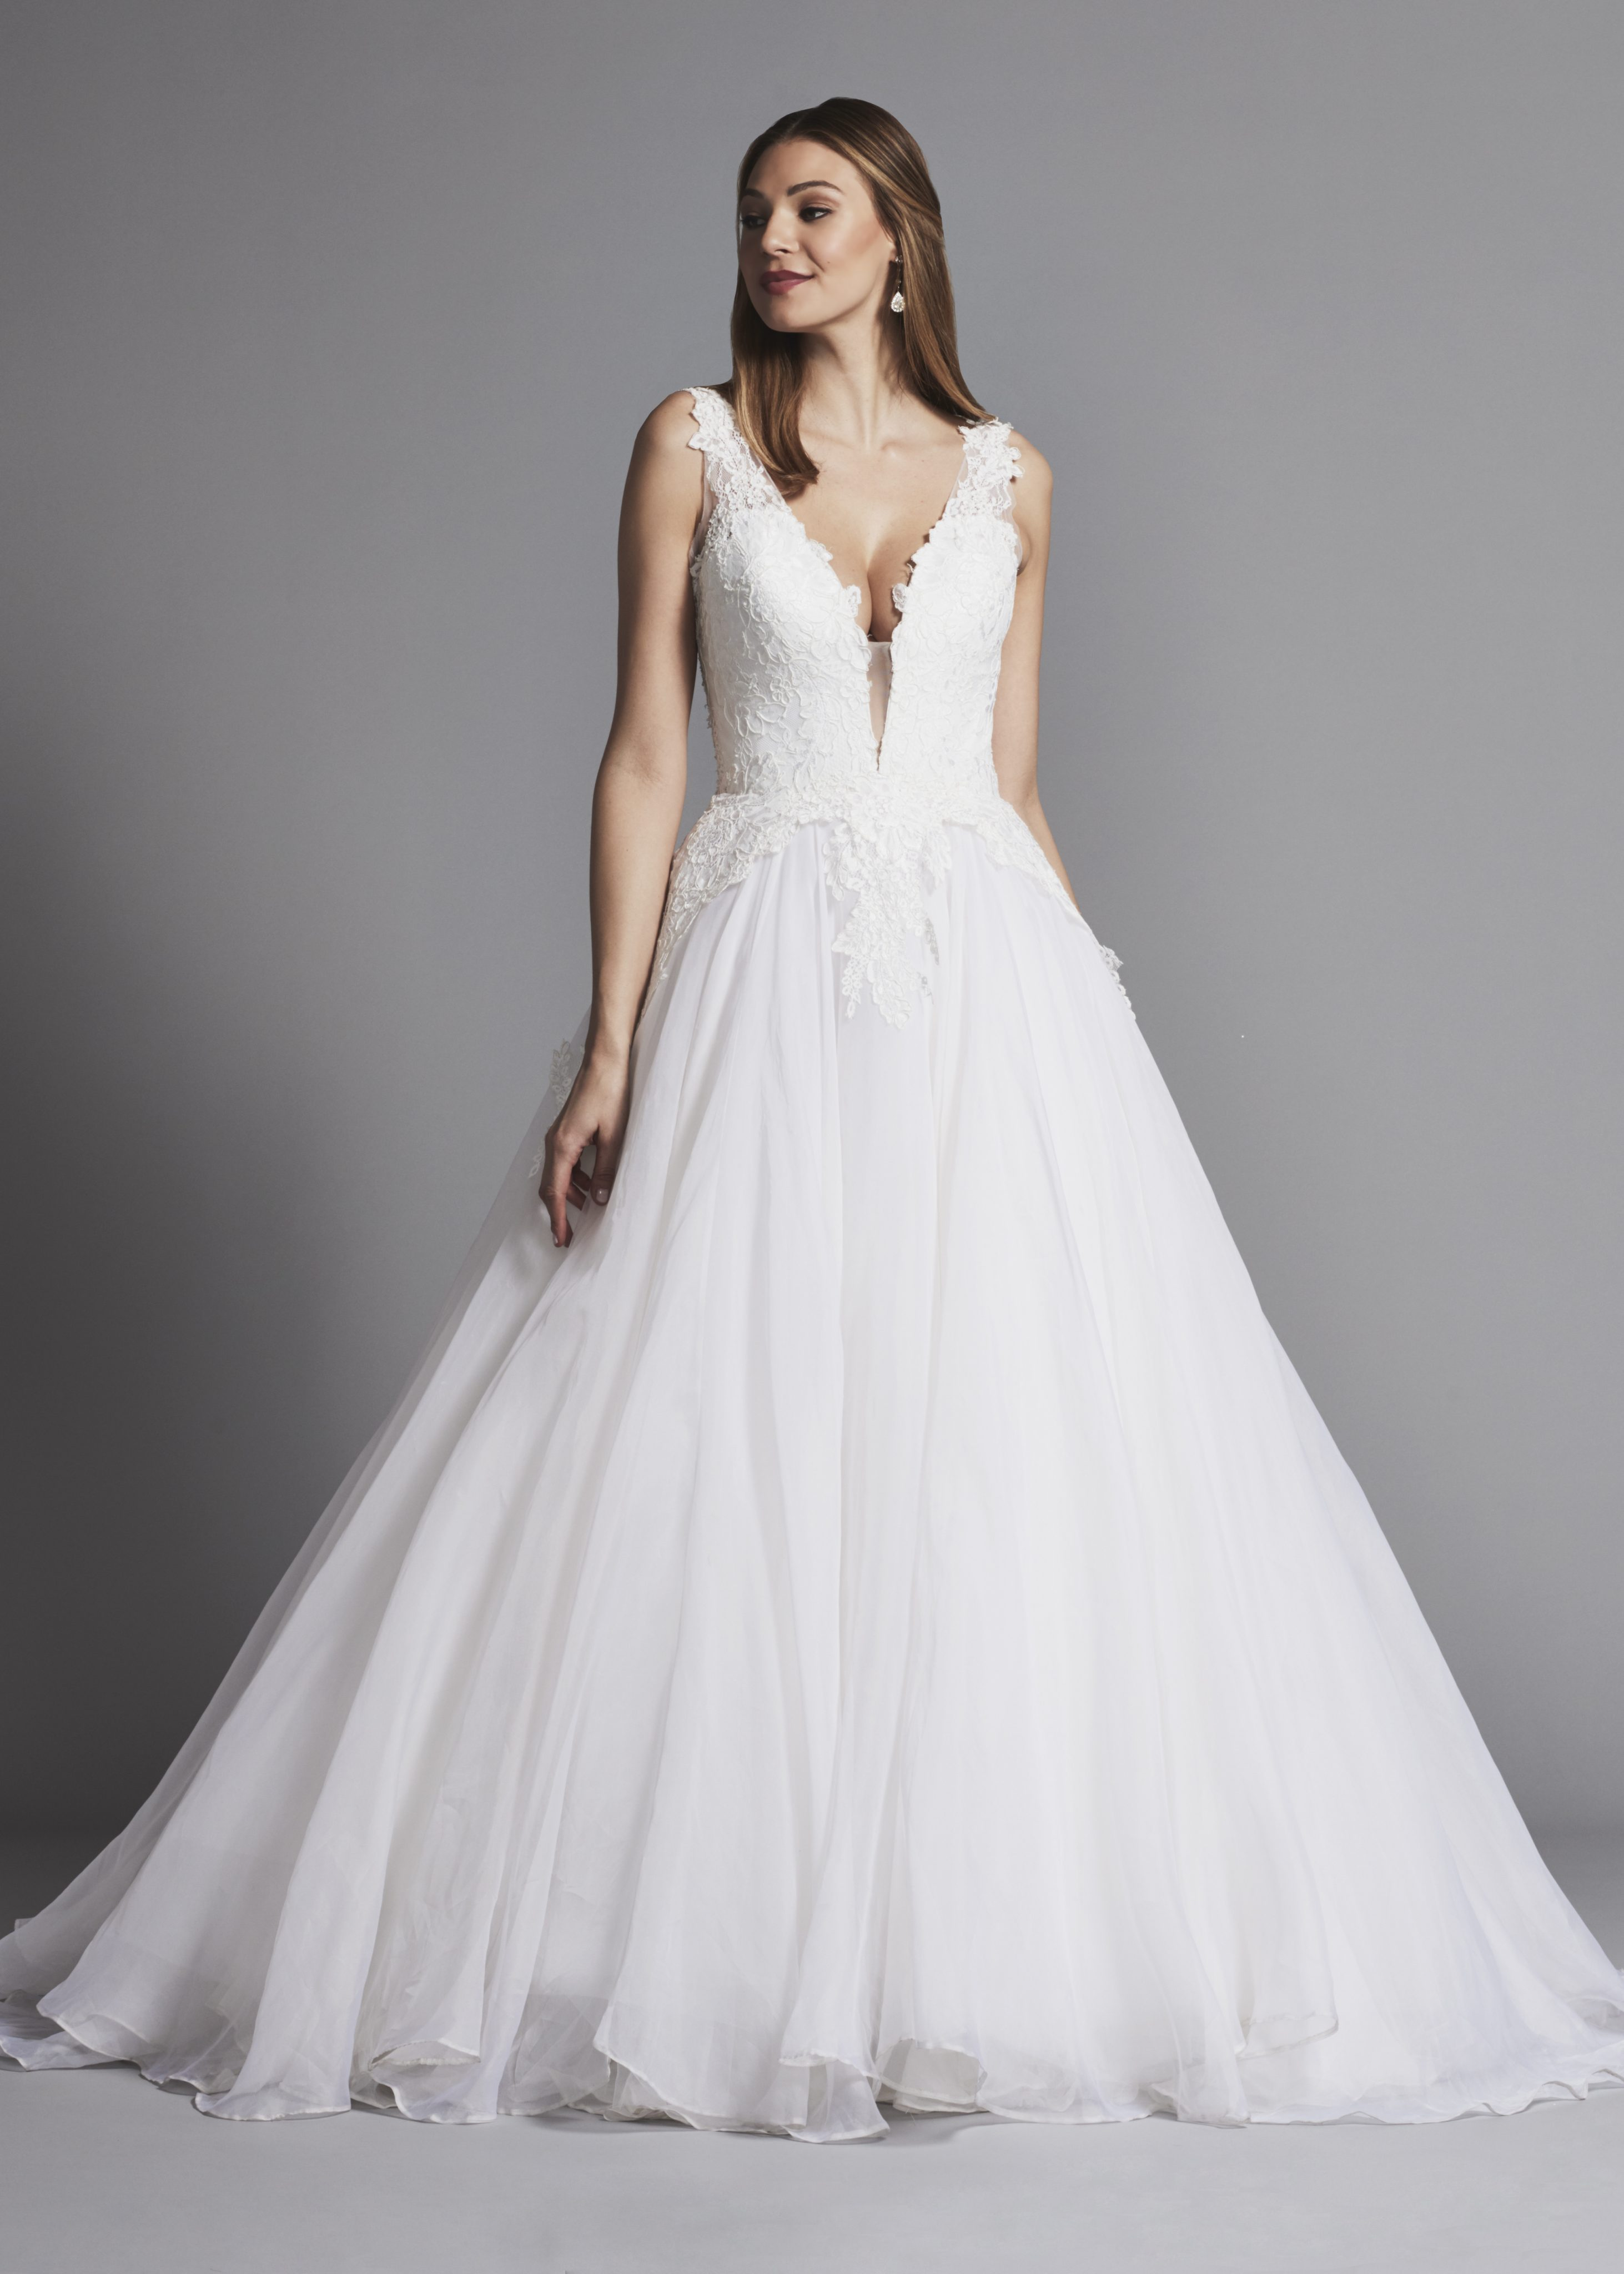 Classic And Romantic Lace And Organza Ball Gown Wedding Dress ...